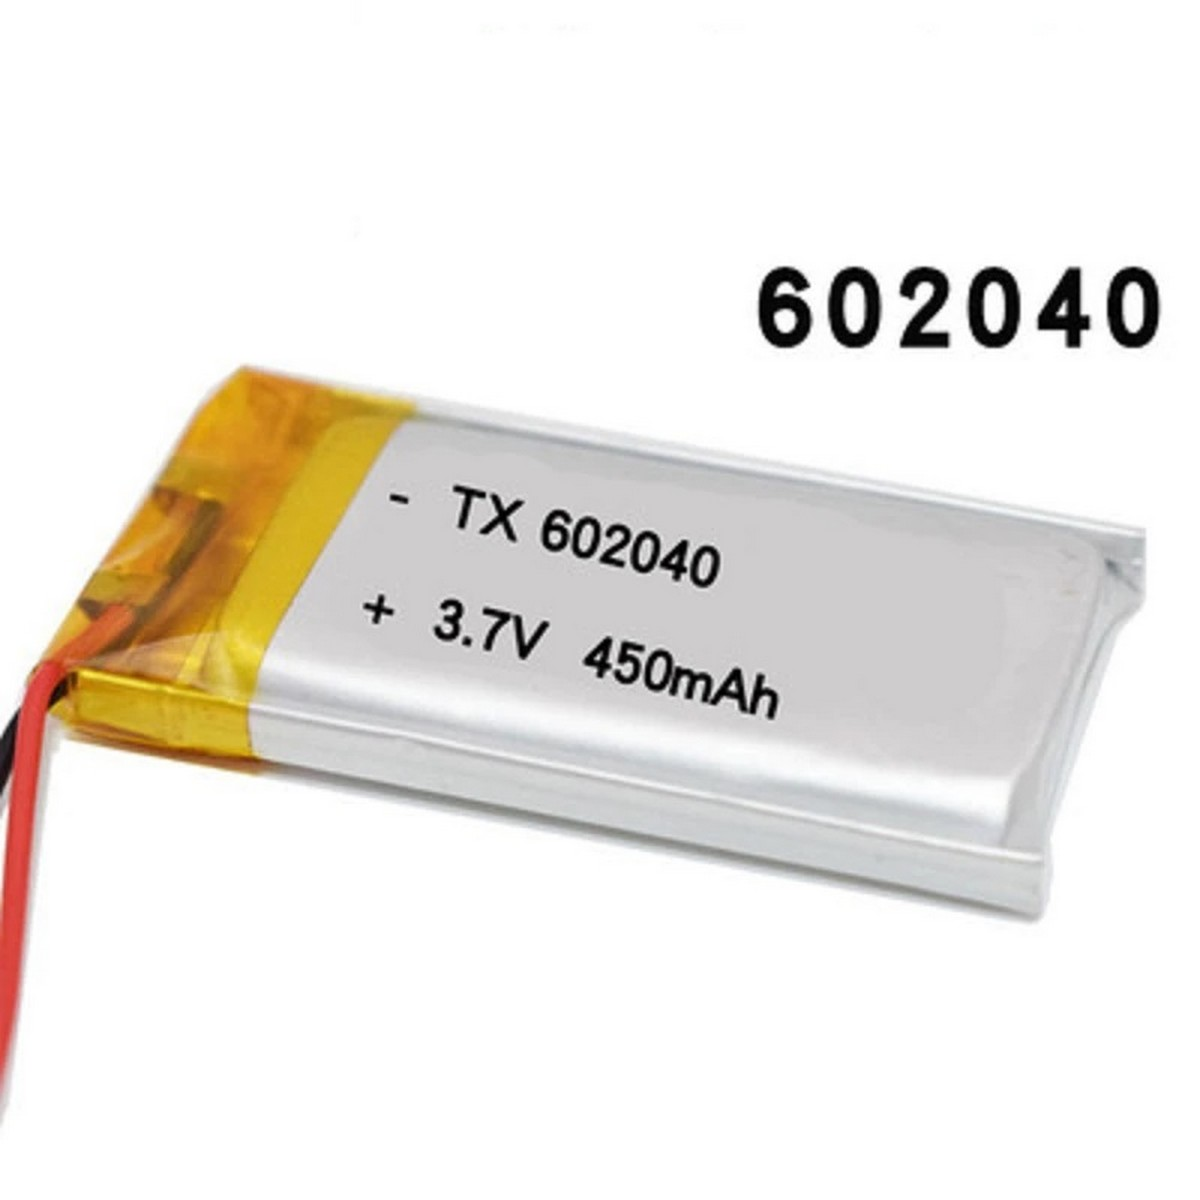 3.7V 450mAh 602040 Lipo battery Rechargeable For Electrical Projects